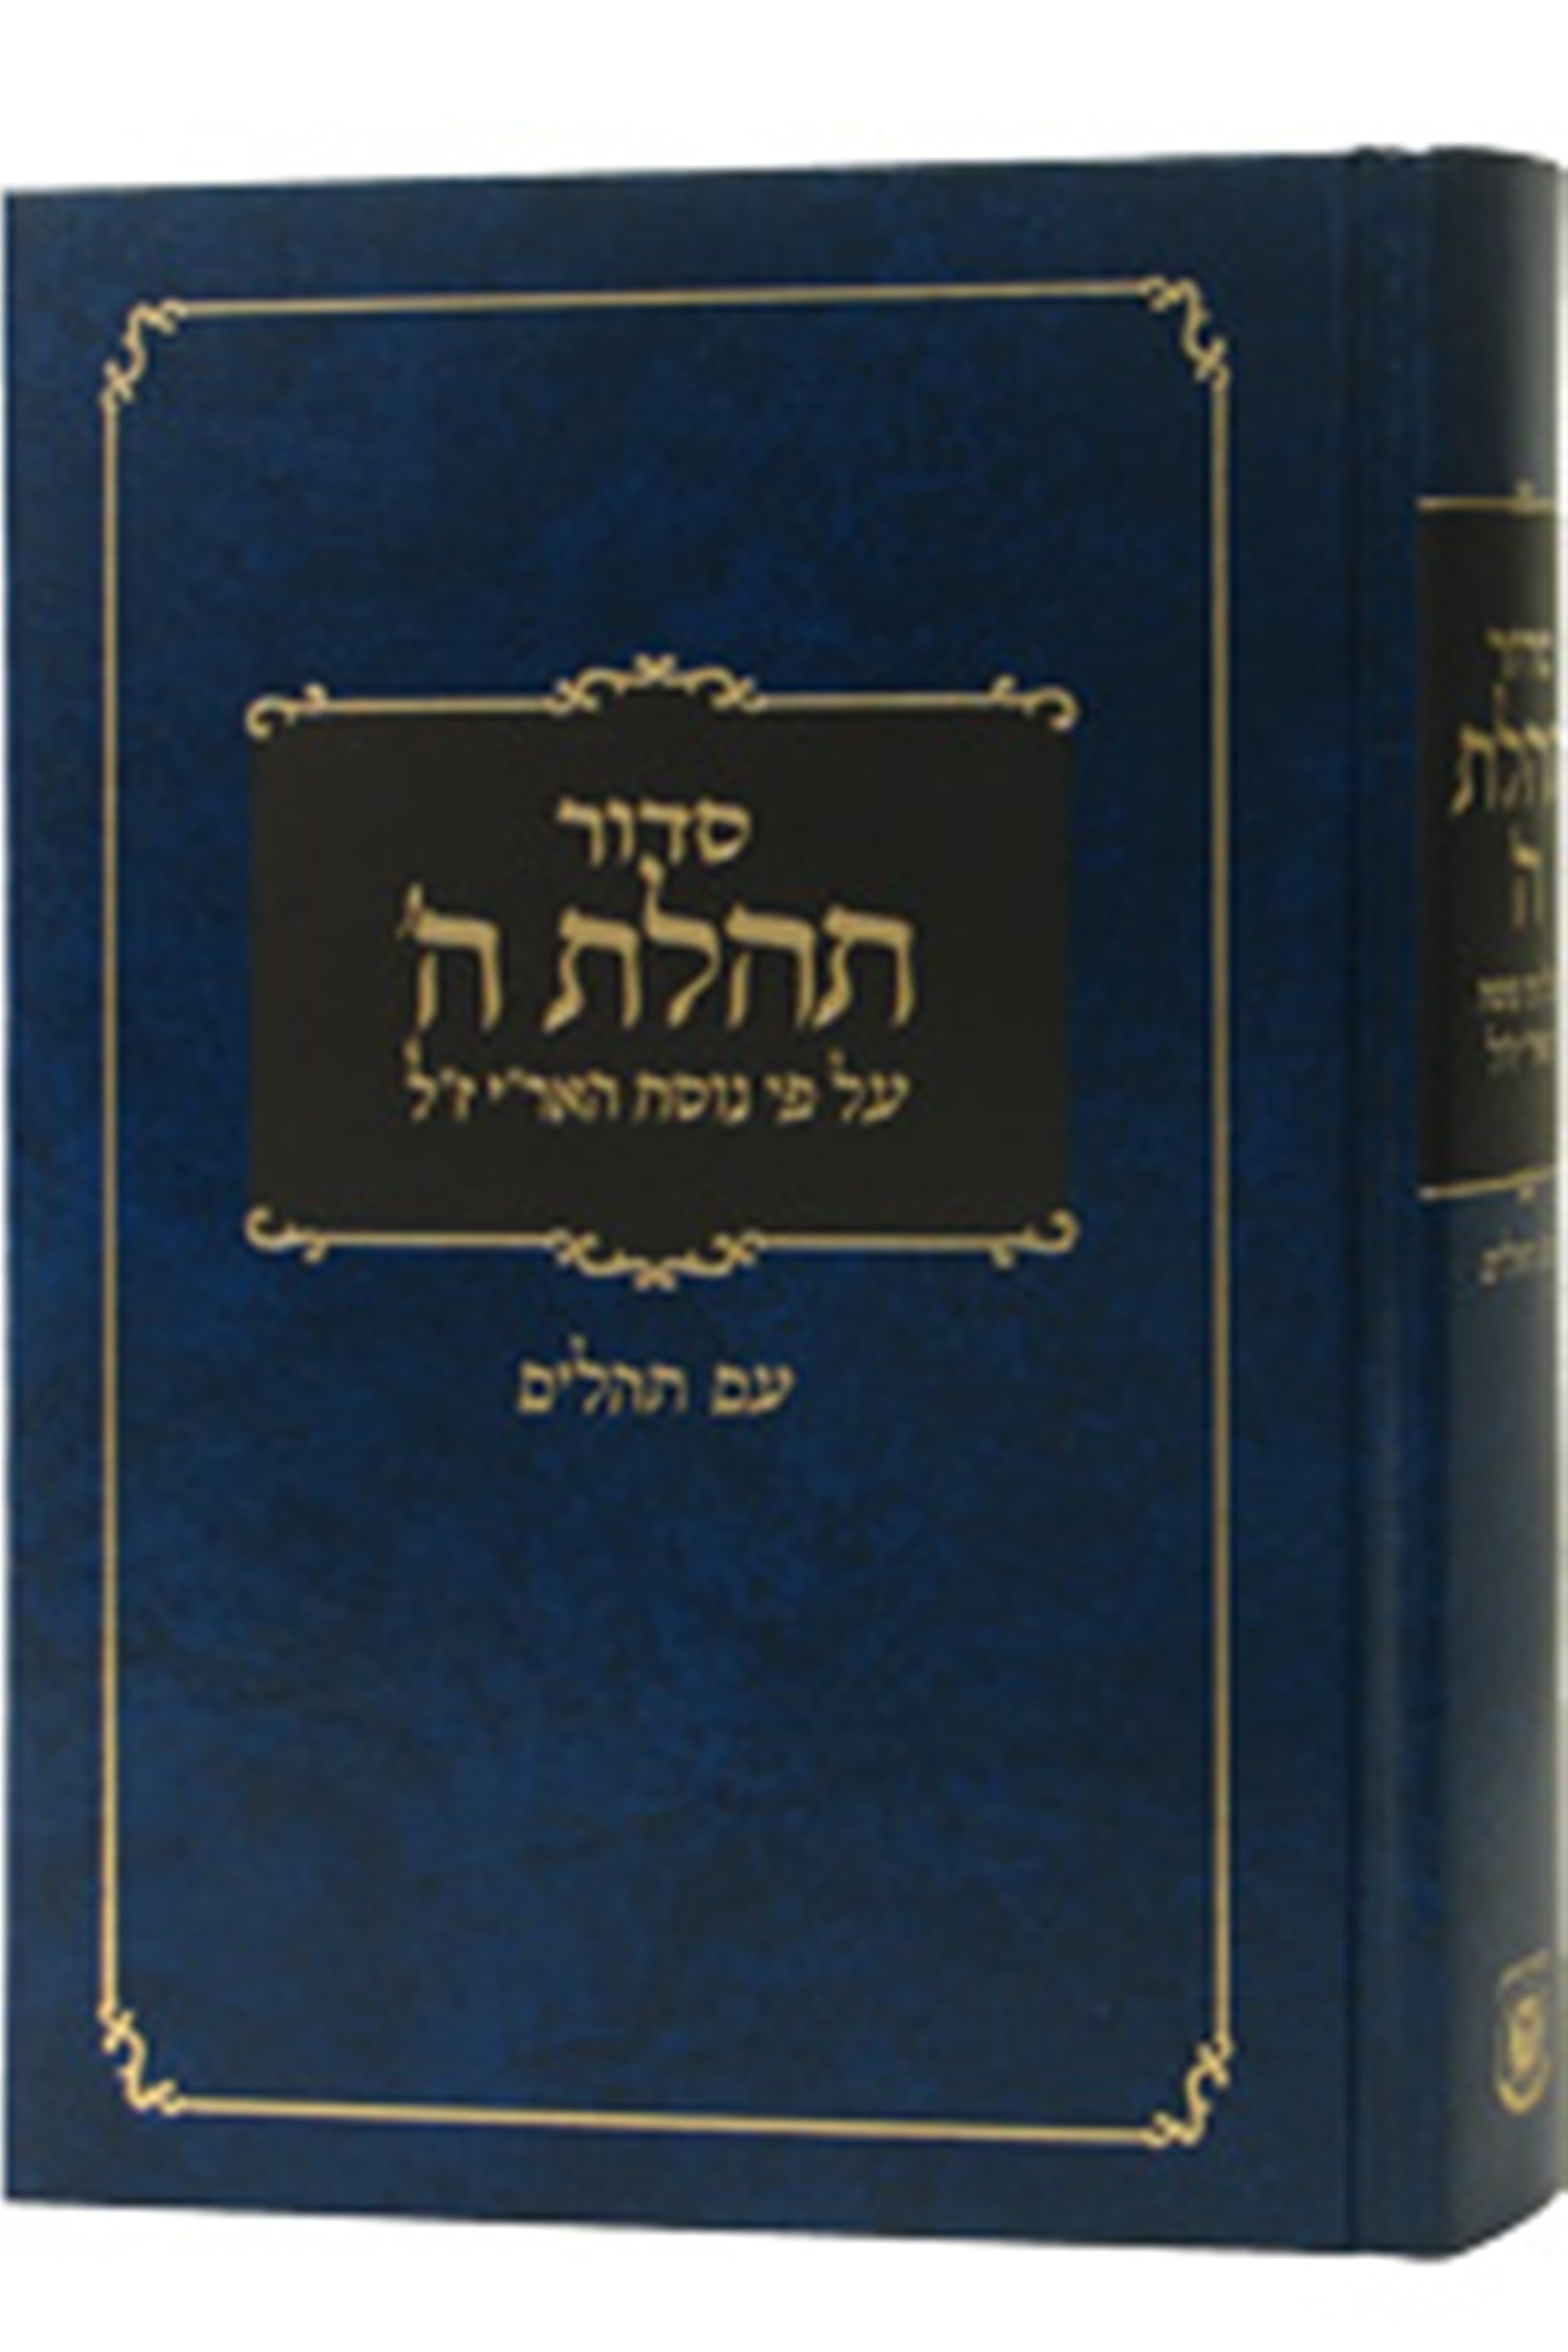 Siddur Tehillat Hashem With Tehillim, Newly Typeset (Hebrew Edition) ebook